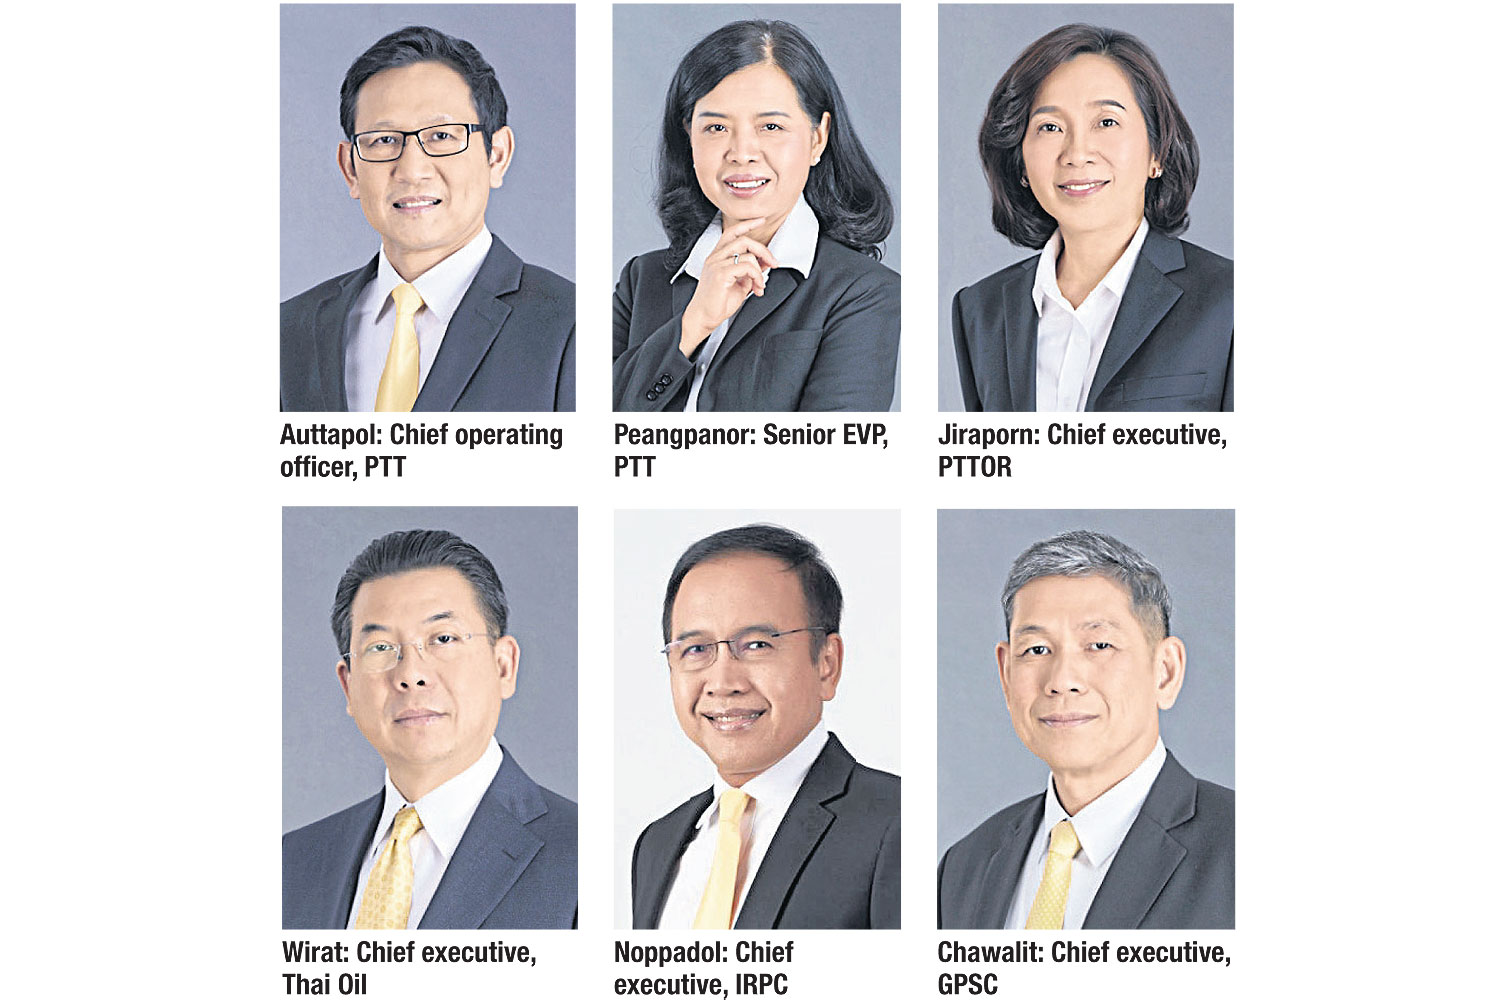 Six Ptt Executives Vie For Chief Posts